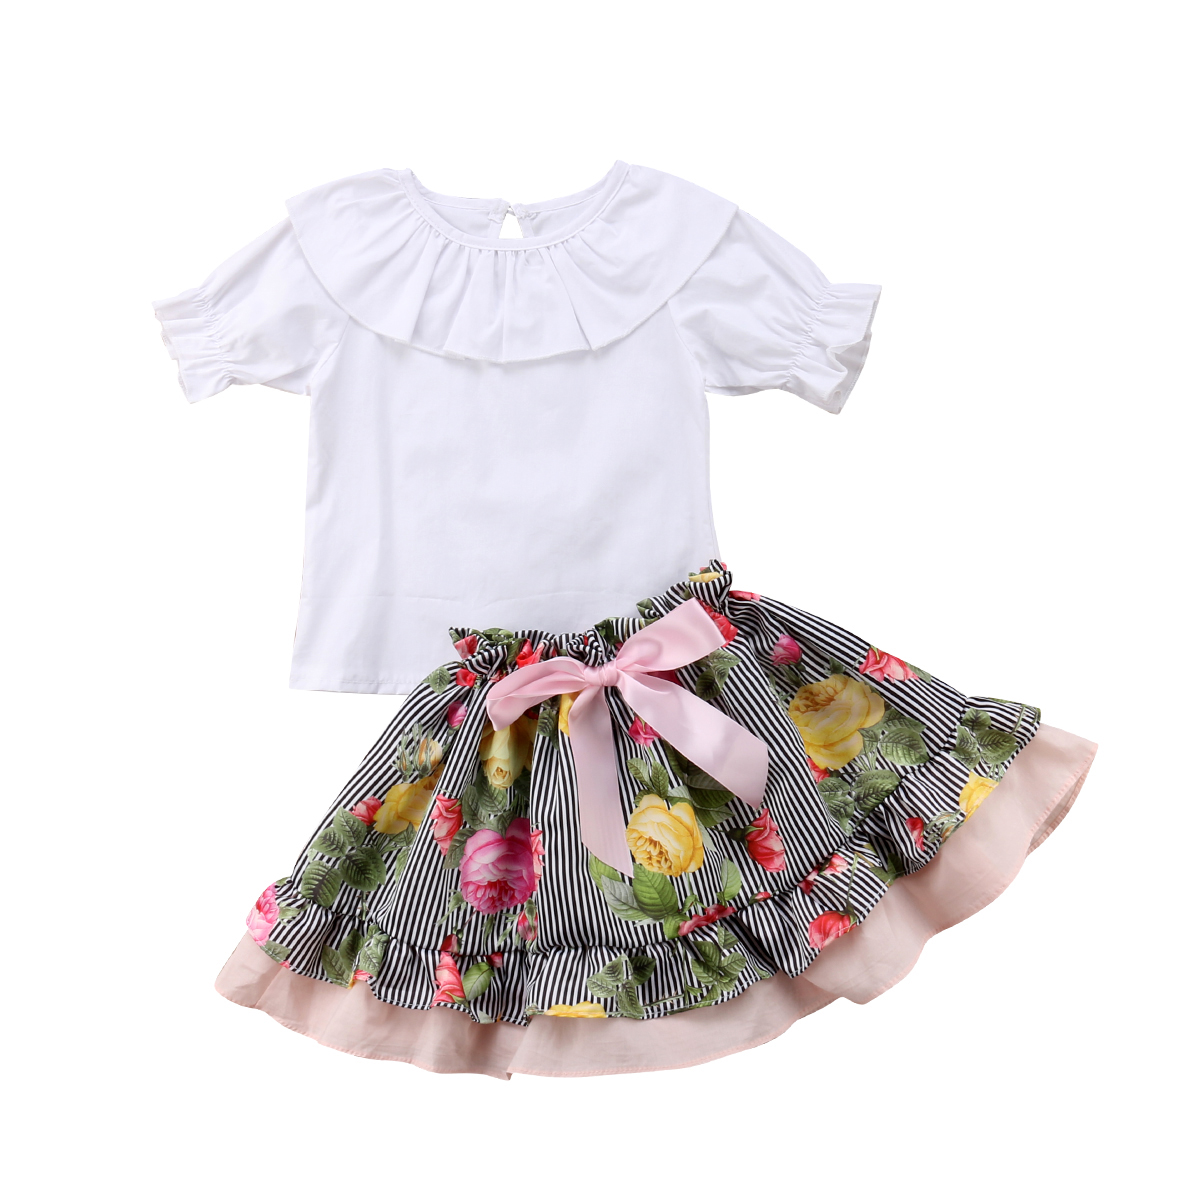 f9b7dcab2d0 Baby Girls Matching Clothes White Big Little Sister Ruffle T-shirt+Print  Shorts Overall Skirts Outfit